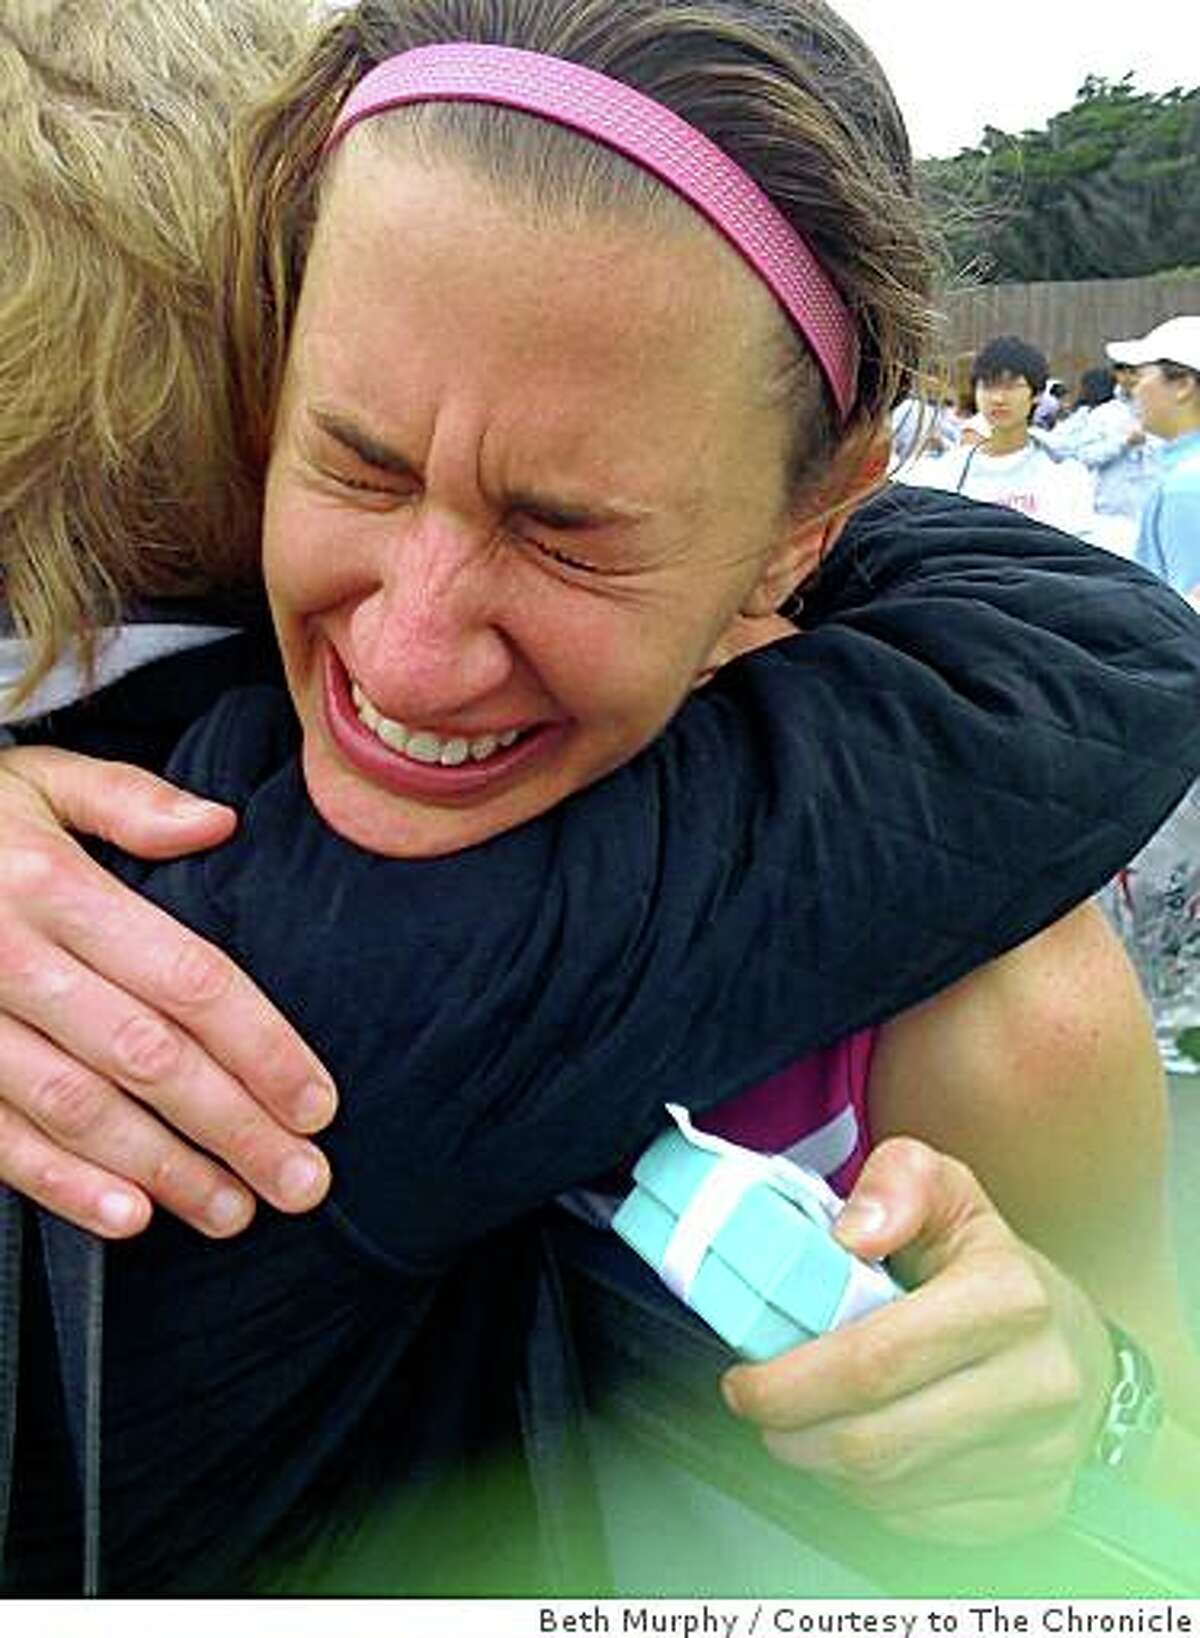 Arien O'Connell hugs her mother Susan O'Connell after finishing the Nike Woman's Marathon on October 19, 2008 in San Francisco, Calif.